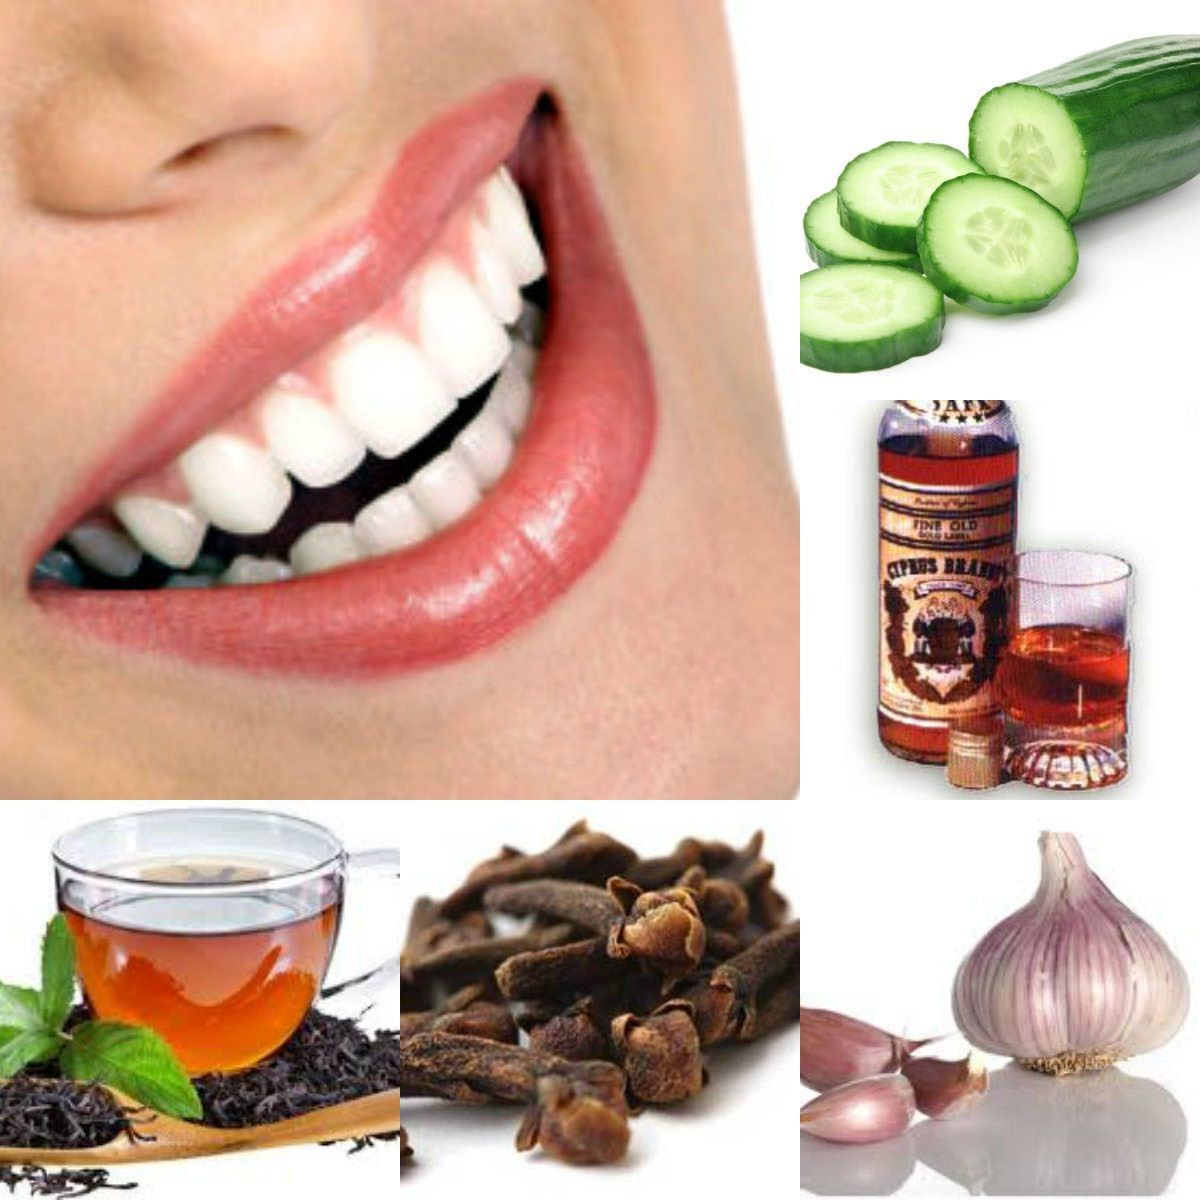 Home Remedies For A Toothache, Wisdom Teeth Coming Through, Wisdom Tooth Gum Pain, Painful Teeth  Click Here For The Free Video:  http://dentist-does-not-want-you-to-know.info-pro.co  Just imagine for a minute…  The relief you'll feel knowing that you'll never have to visit the dentist's office again...  Imagine the relief from throbbing painful, annoying toothaches...  Imagine all the attention and compliments when you flash your million dollar smile...  Imagine waking up, looking the…